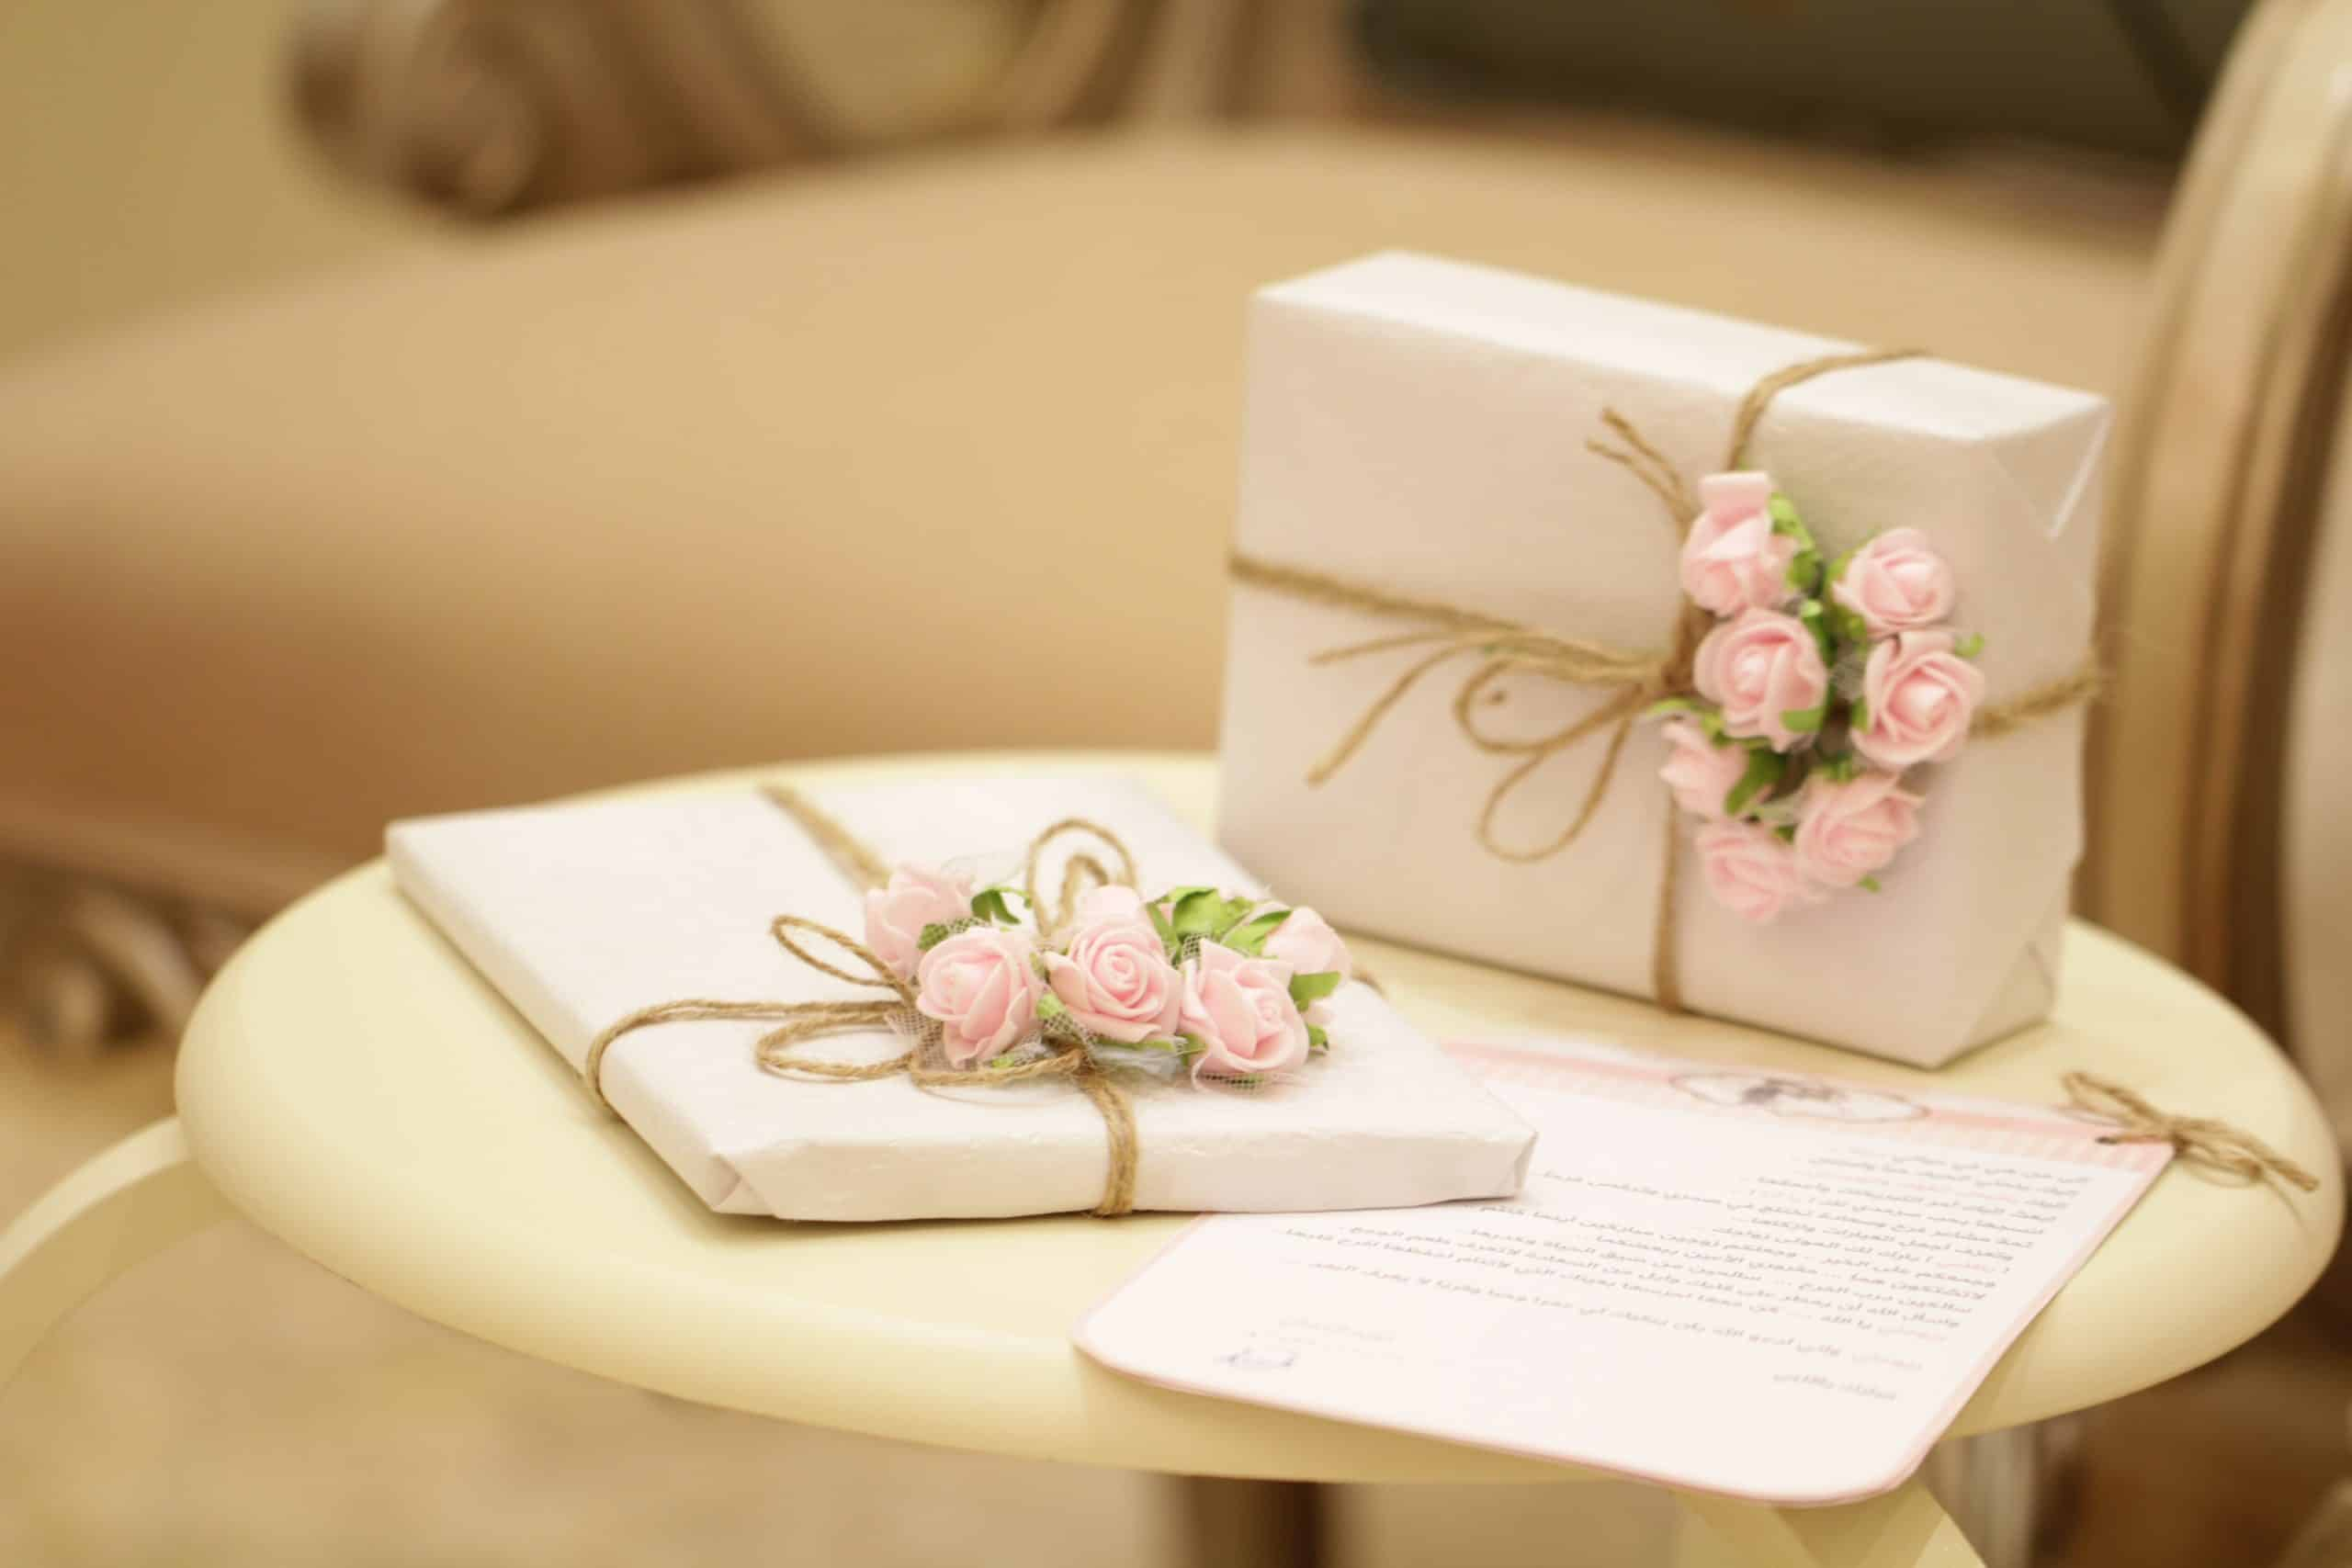 Unique Wedding Souvenirs - Gifts For the Guests